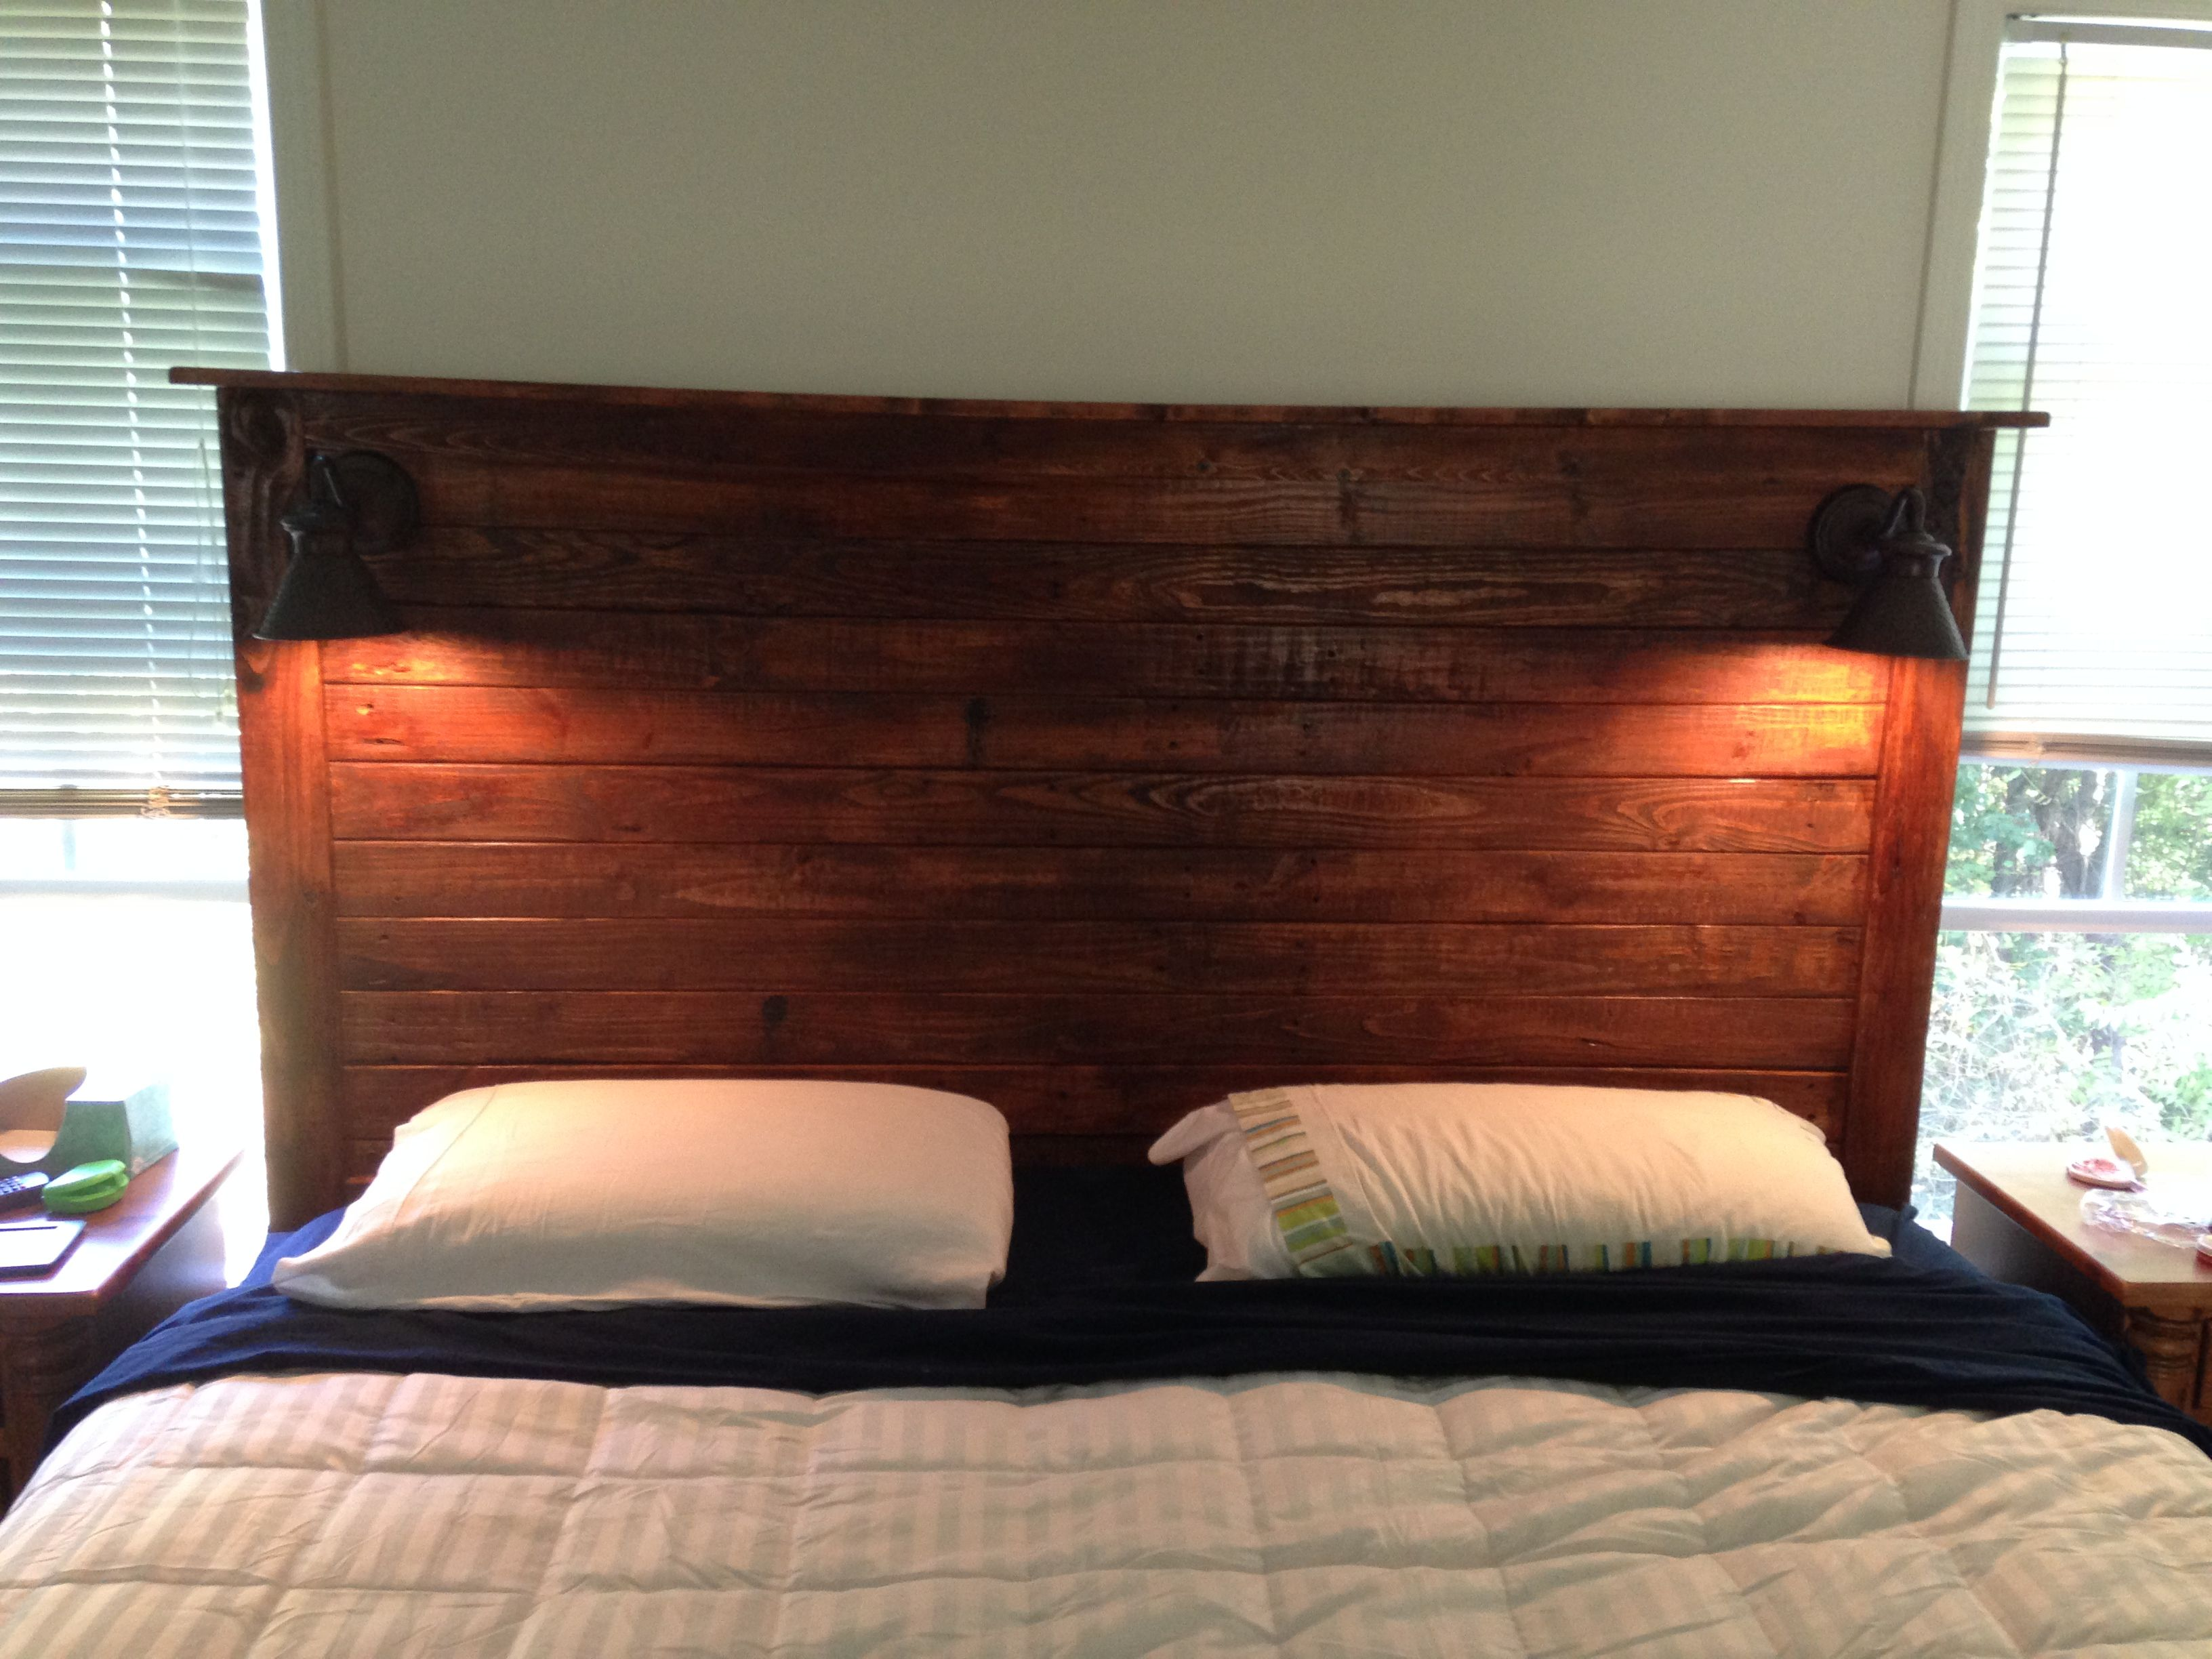 King size headboard made from the pallets that the bed arrived on